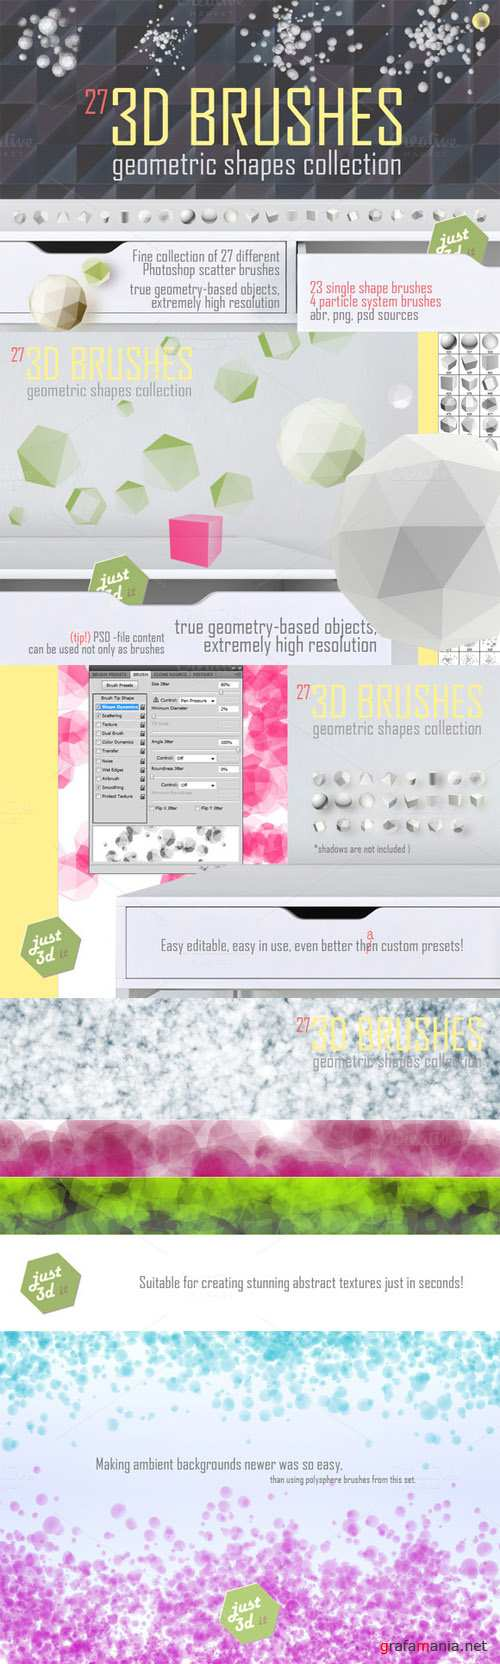 CM - 3D brushes for Photoshop 129038